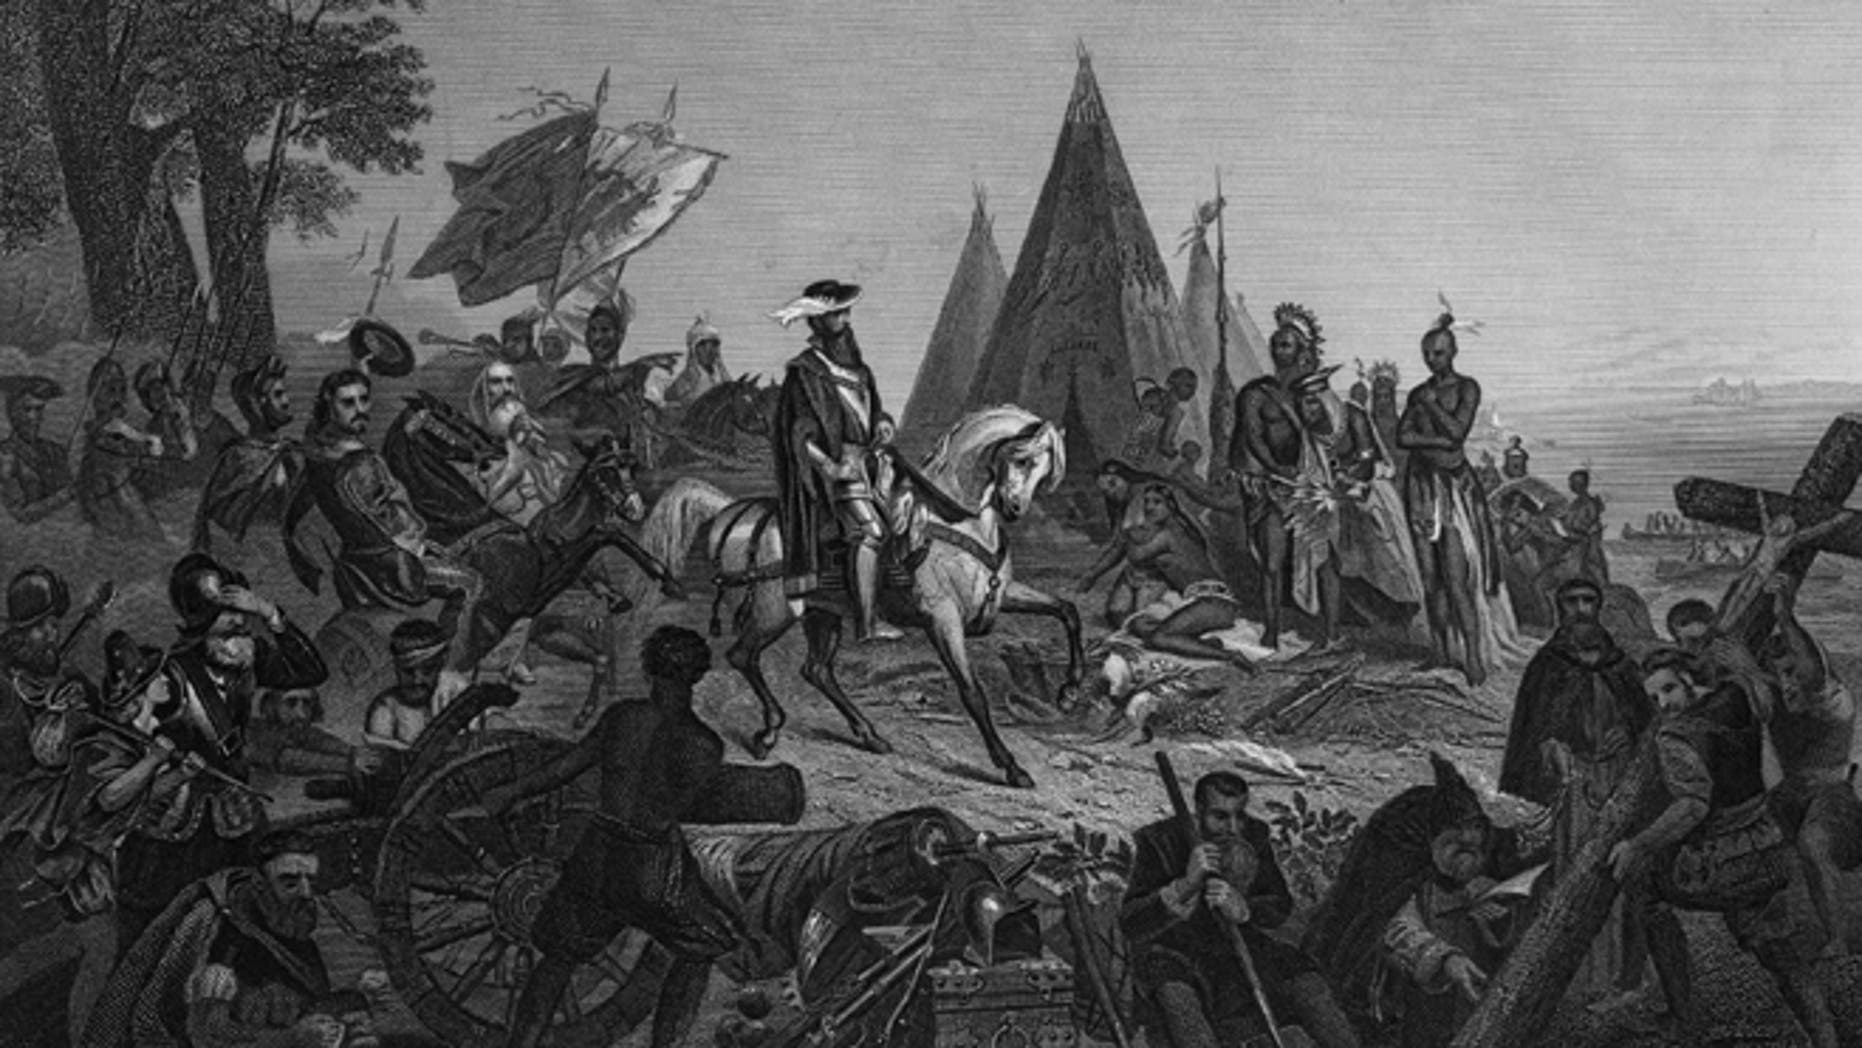 21st May 1540, Spanish explorer Hernando de Soto ( 1500 - 1542 ) 'discovers' the Mississippi. (Photo by Three Lions/Getty Images)